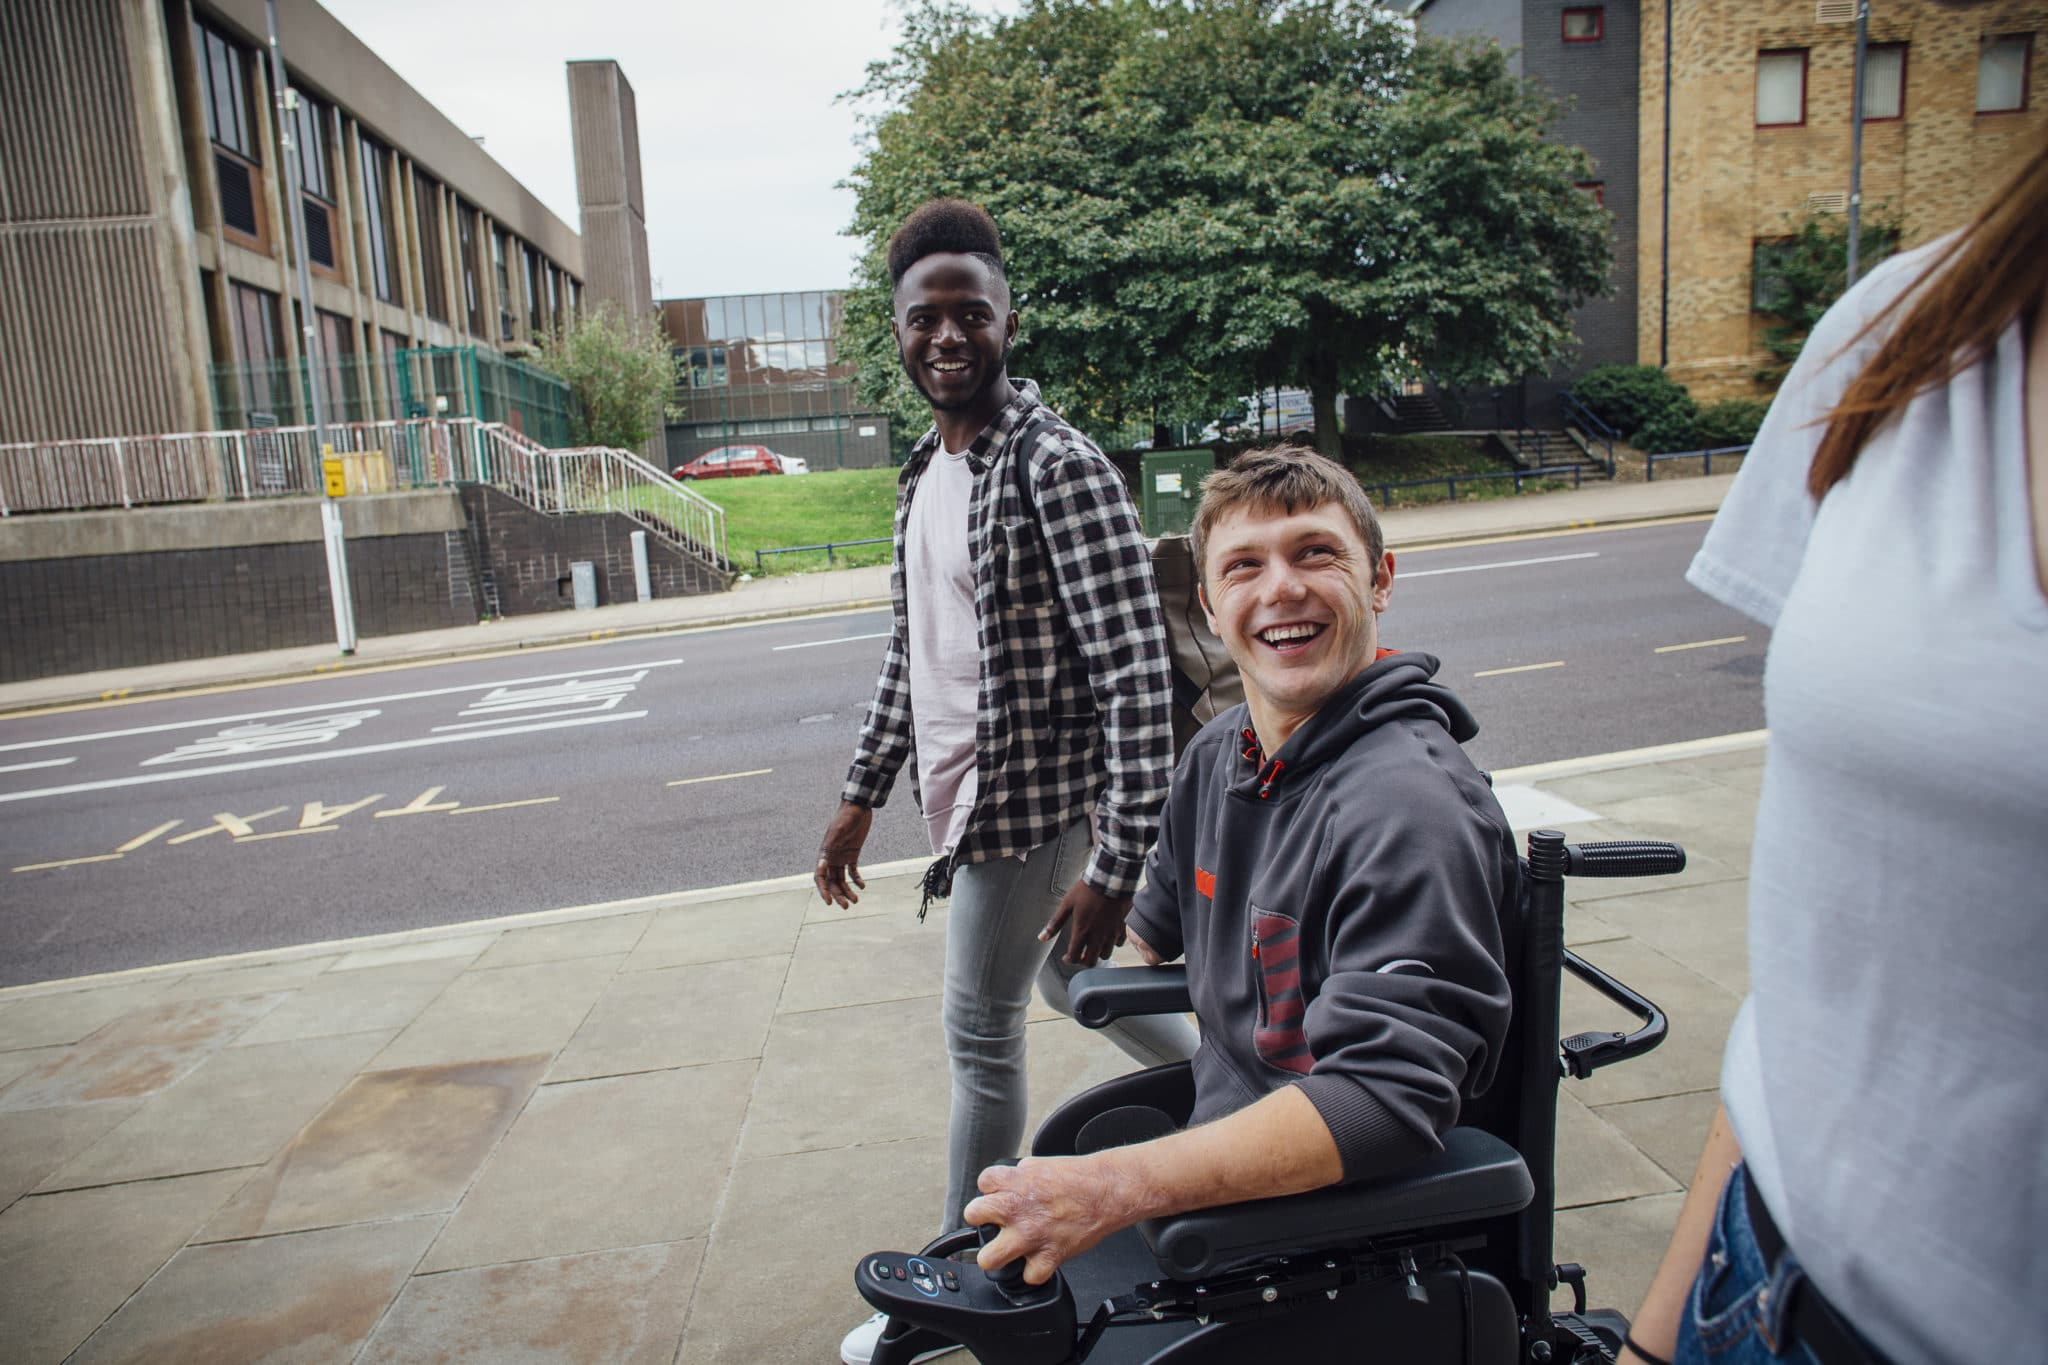 Three young adults on a pavement, one in a wheelchair, looking happy